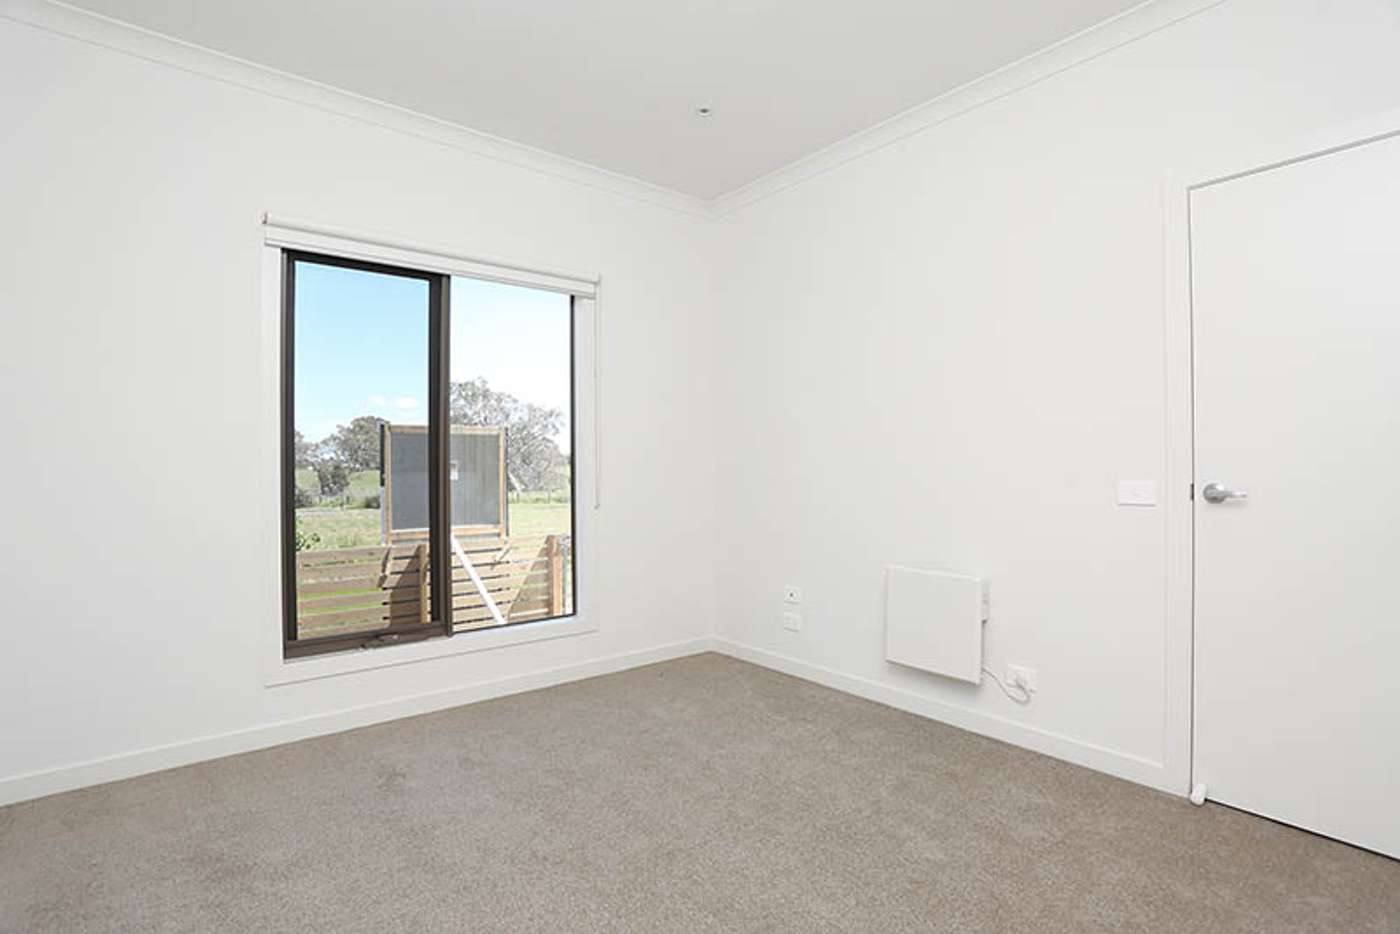 Fifth view of Homely townhouse listing, 6/1-15 Beddison Road, Craigieburn VIC 3064